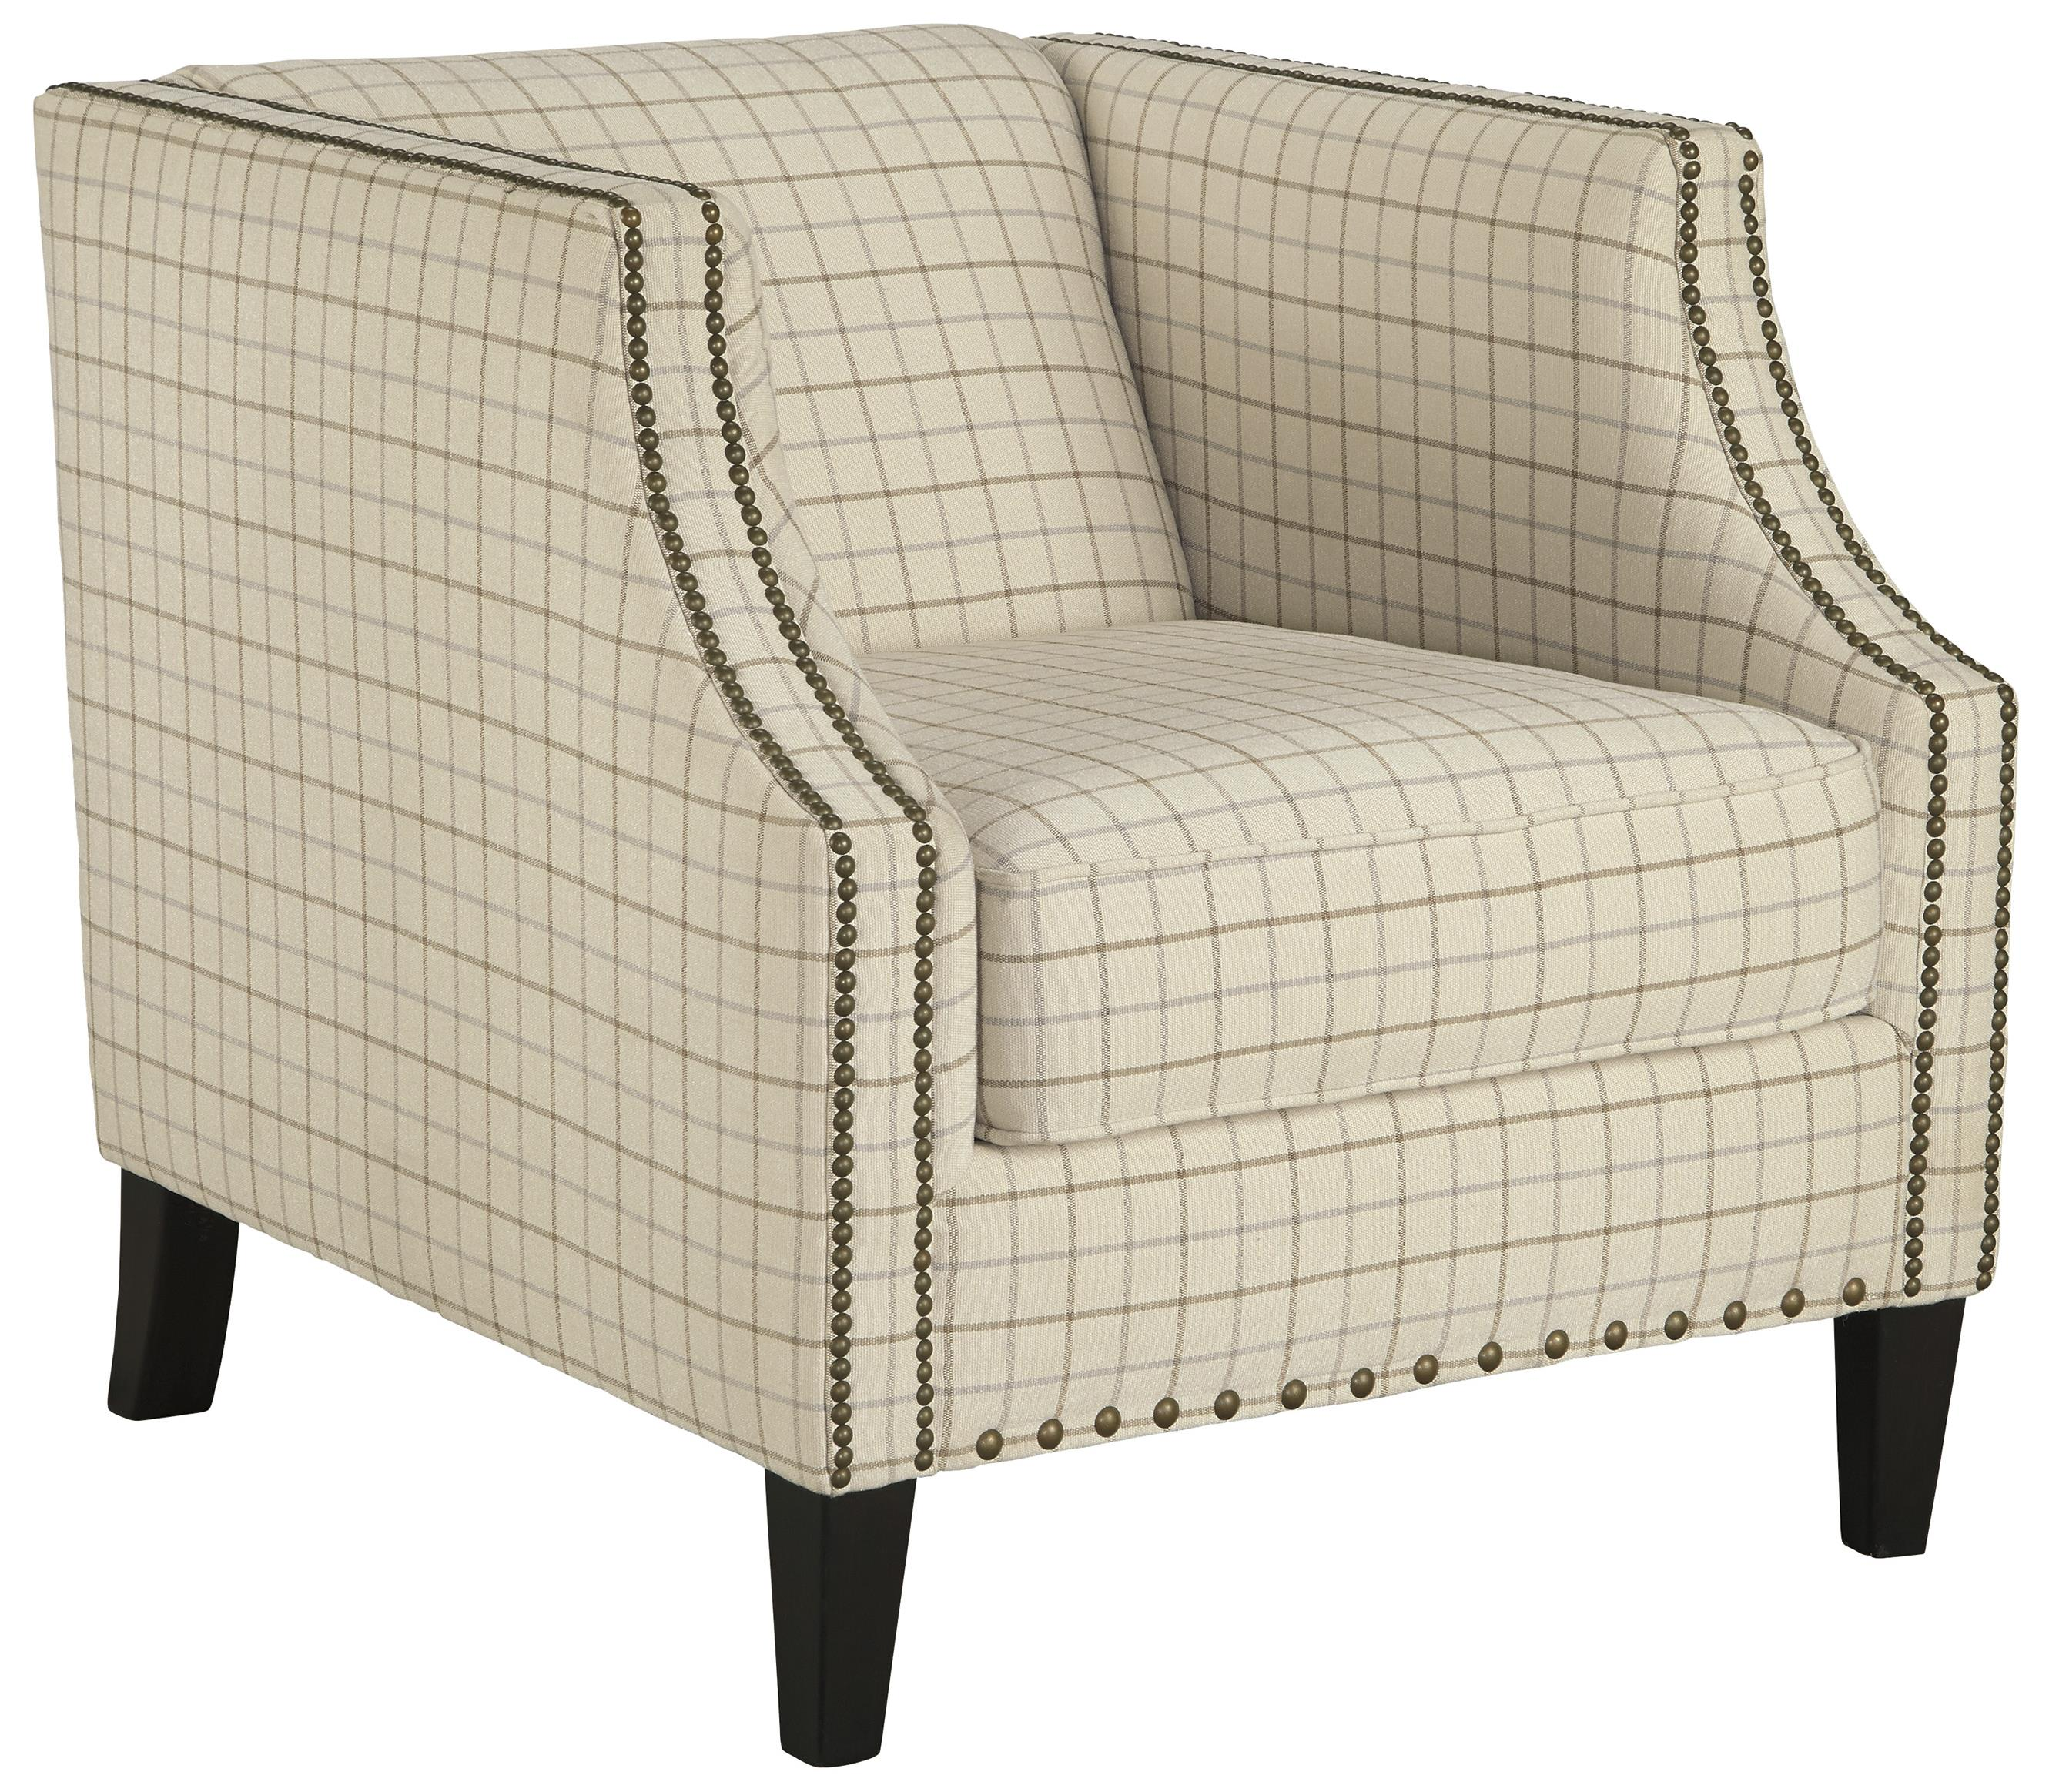 Signature Design by Ashley Kieran Accent Chair - Item Number: 4400022